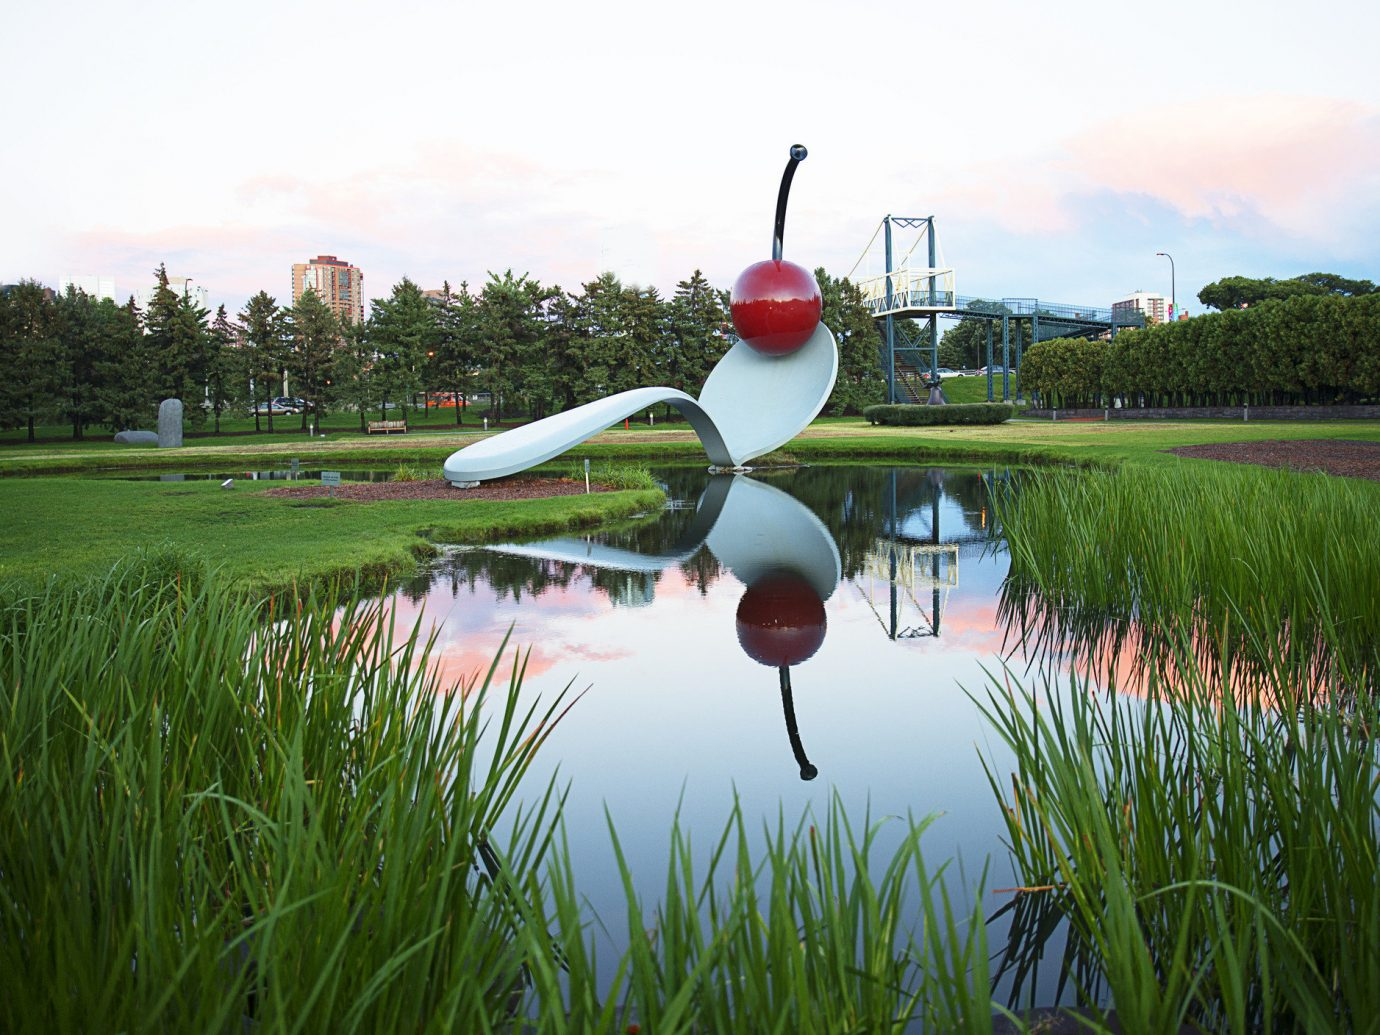 Trip Ideas grass outdoor sky reflection sport venue Golf red golf club pond paddy field lawn meadow golf course